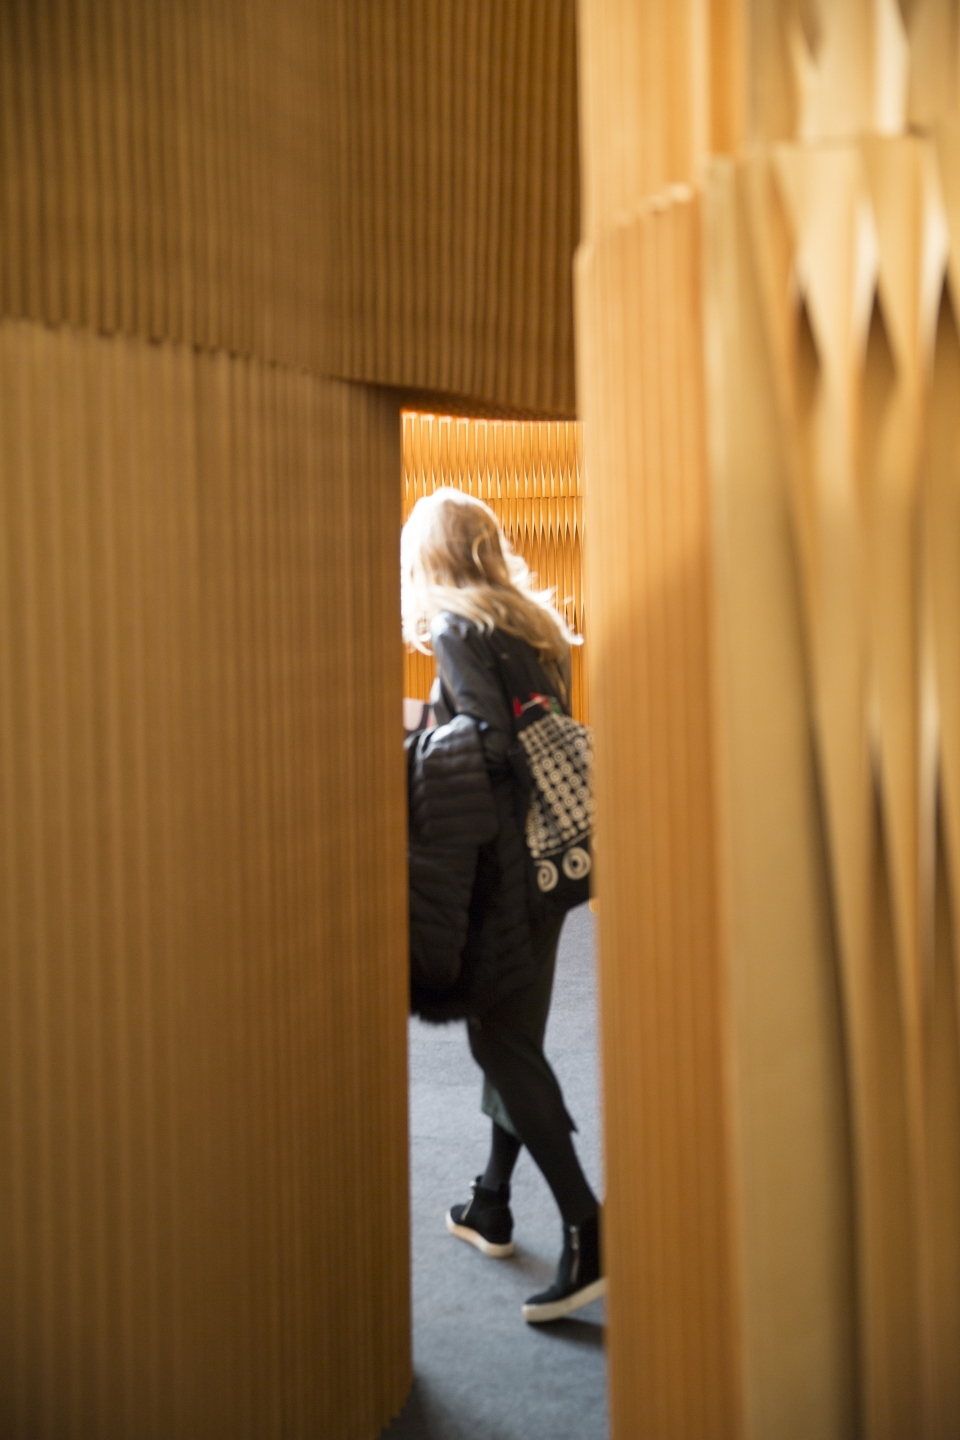 A woman explores the molo display at Maison & Objet 2018. accordion portable partition walls